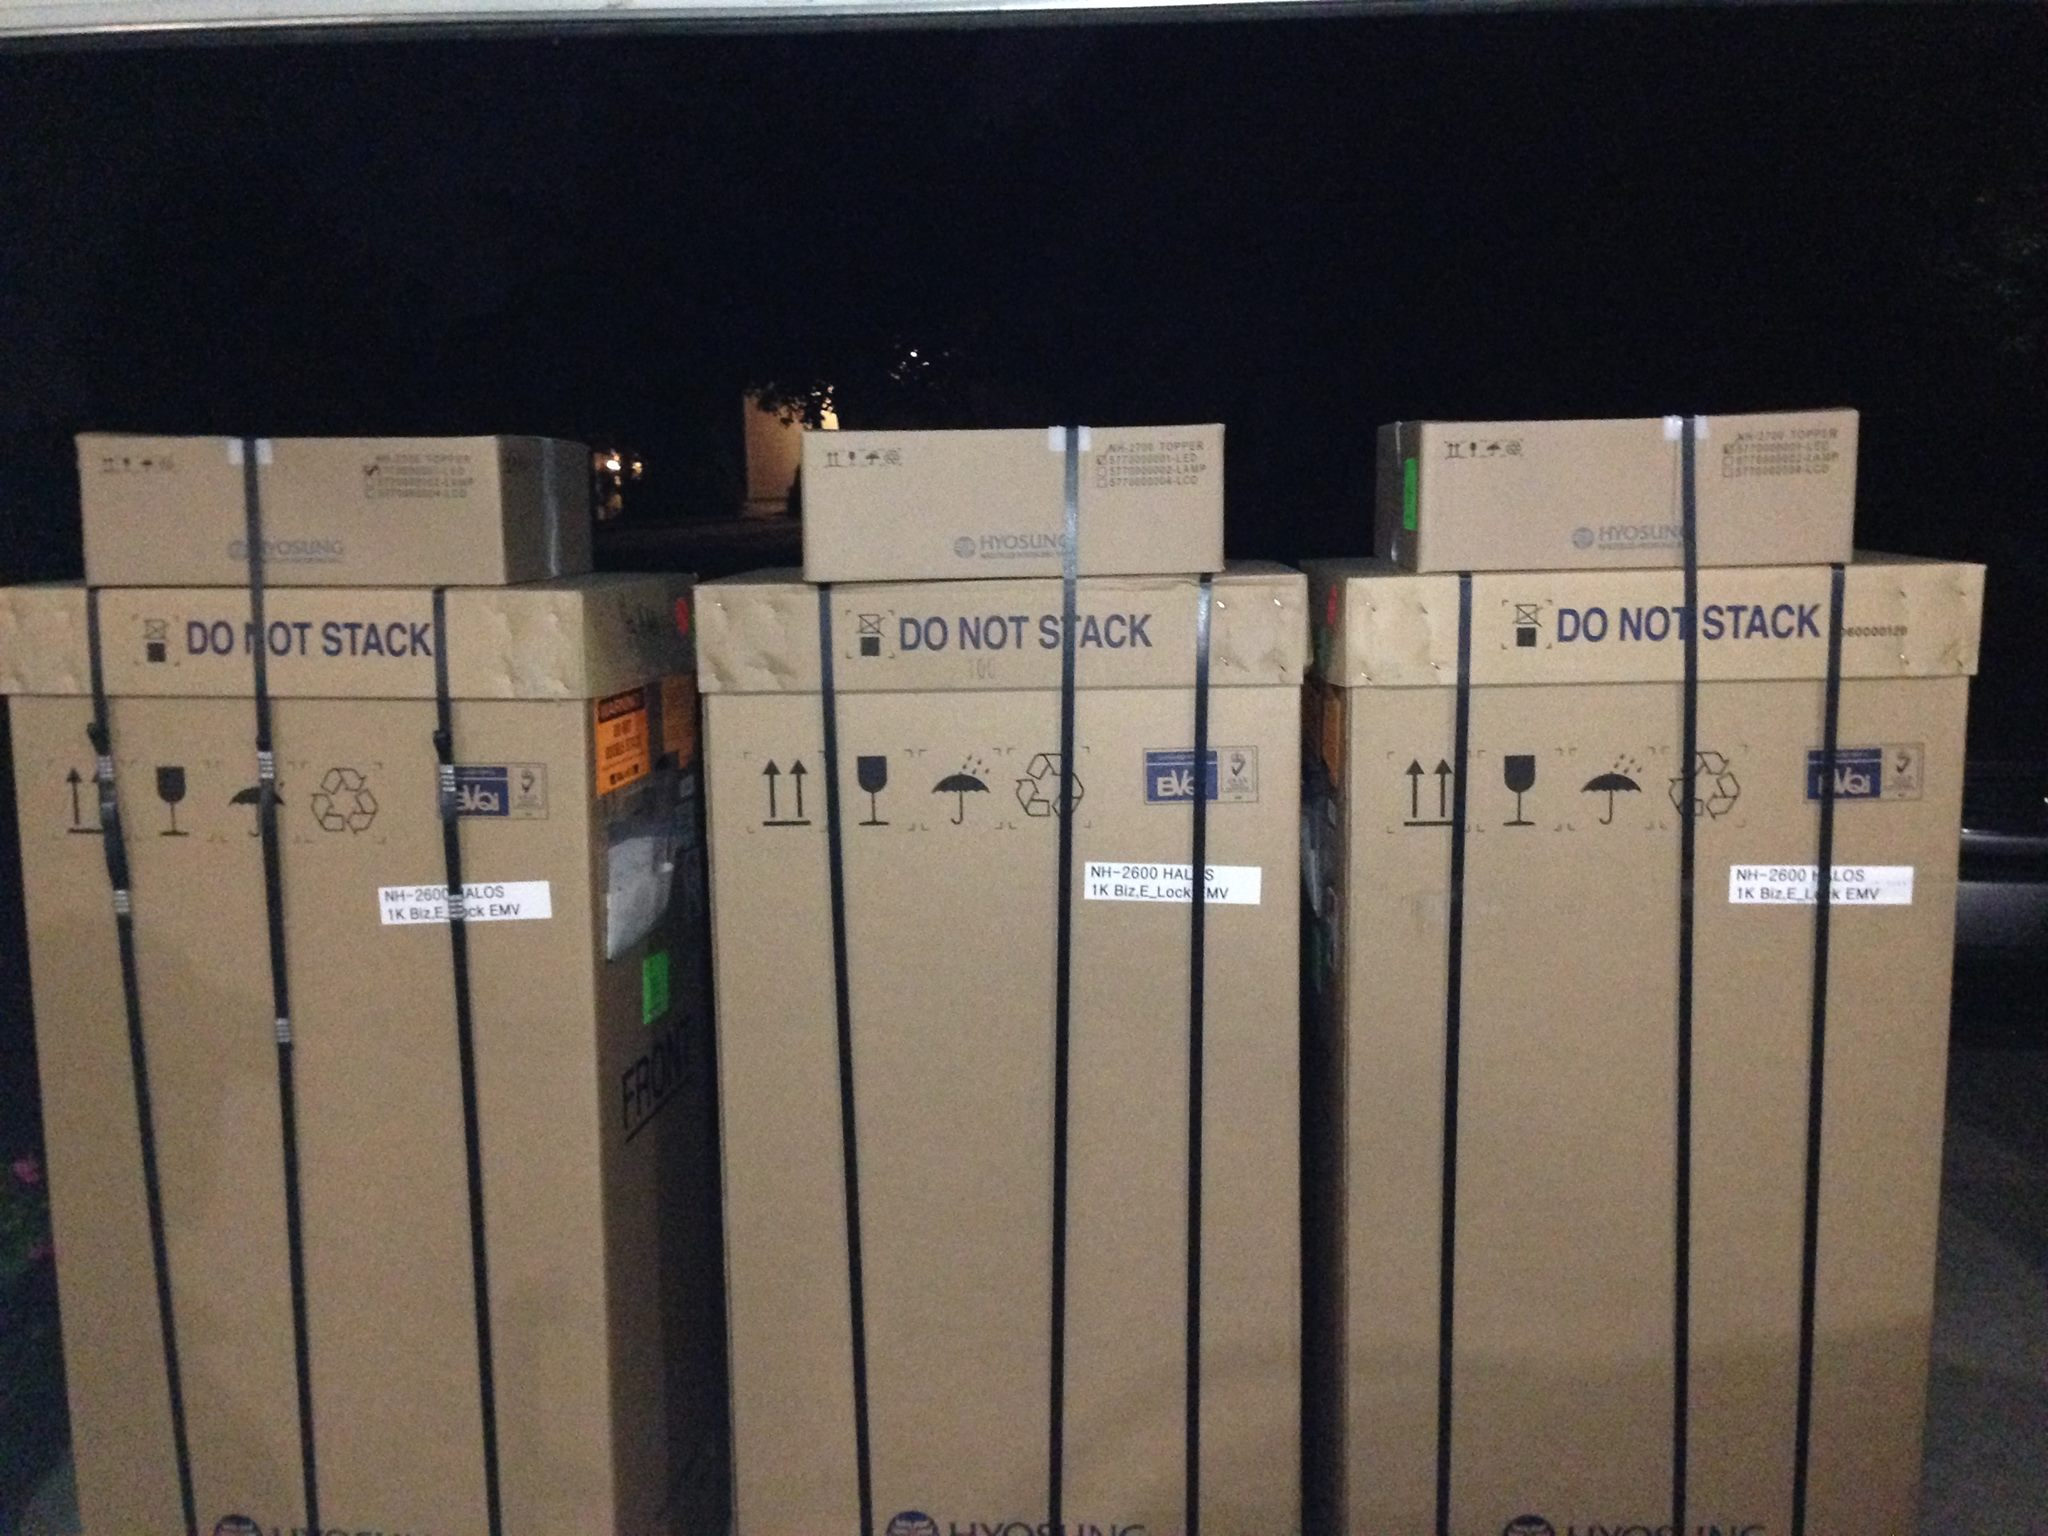 ATM Delivery - 3 ATM Machine Packages Hyosung